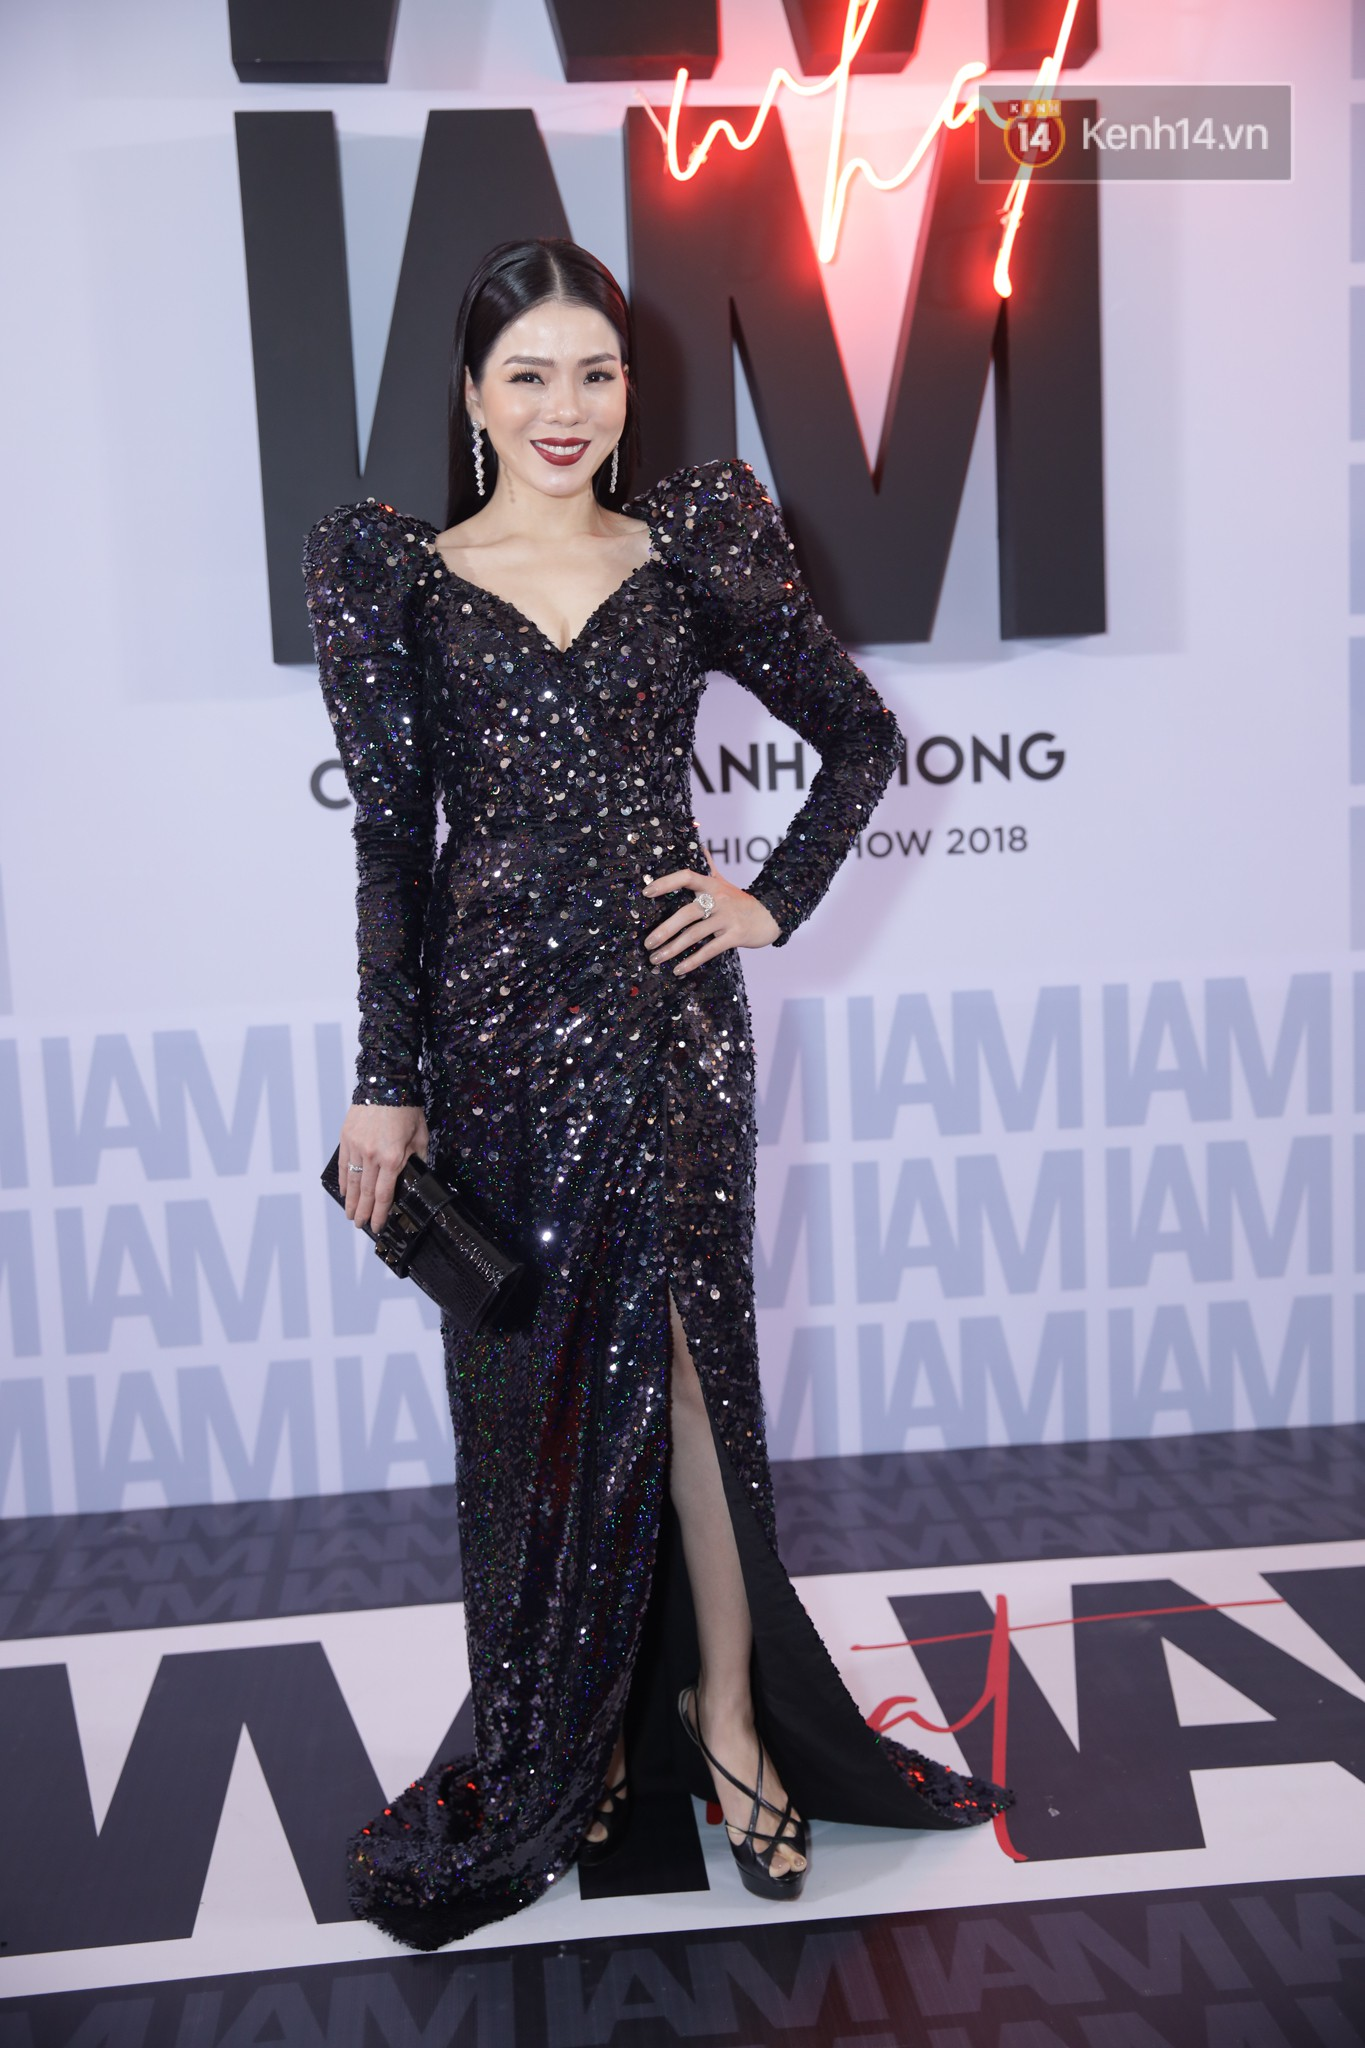 The red carpet Chung Thanh Phong show: it was able to test strange styles, Quỳnh Anh Shyn caught rain like spiders - Photo 24.